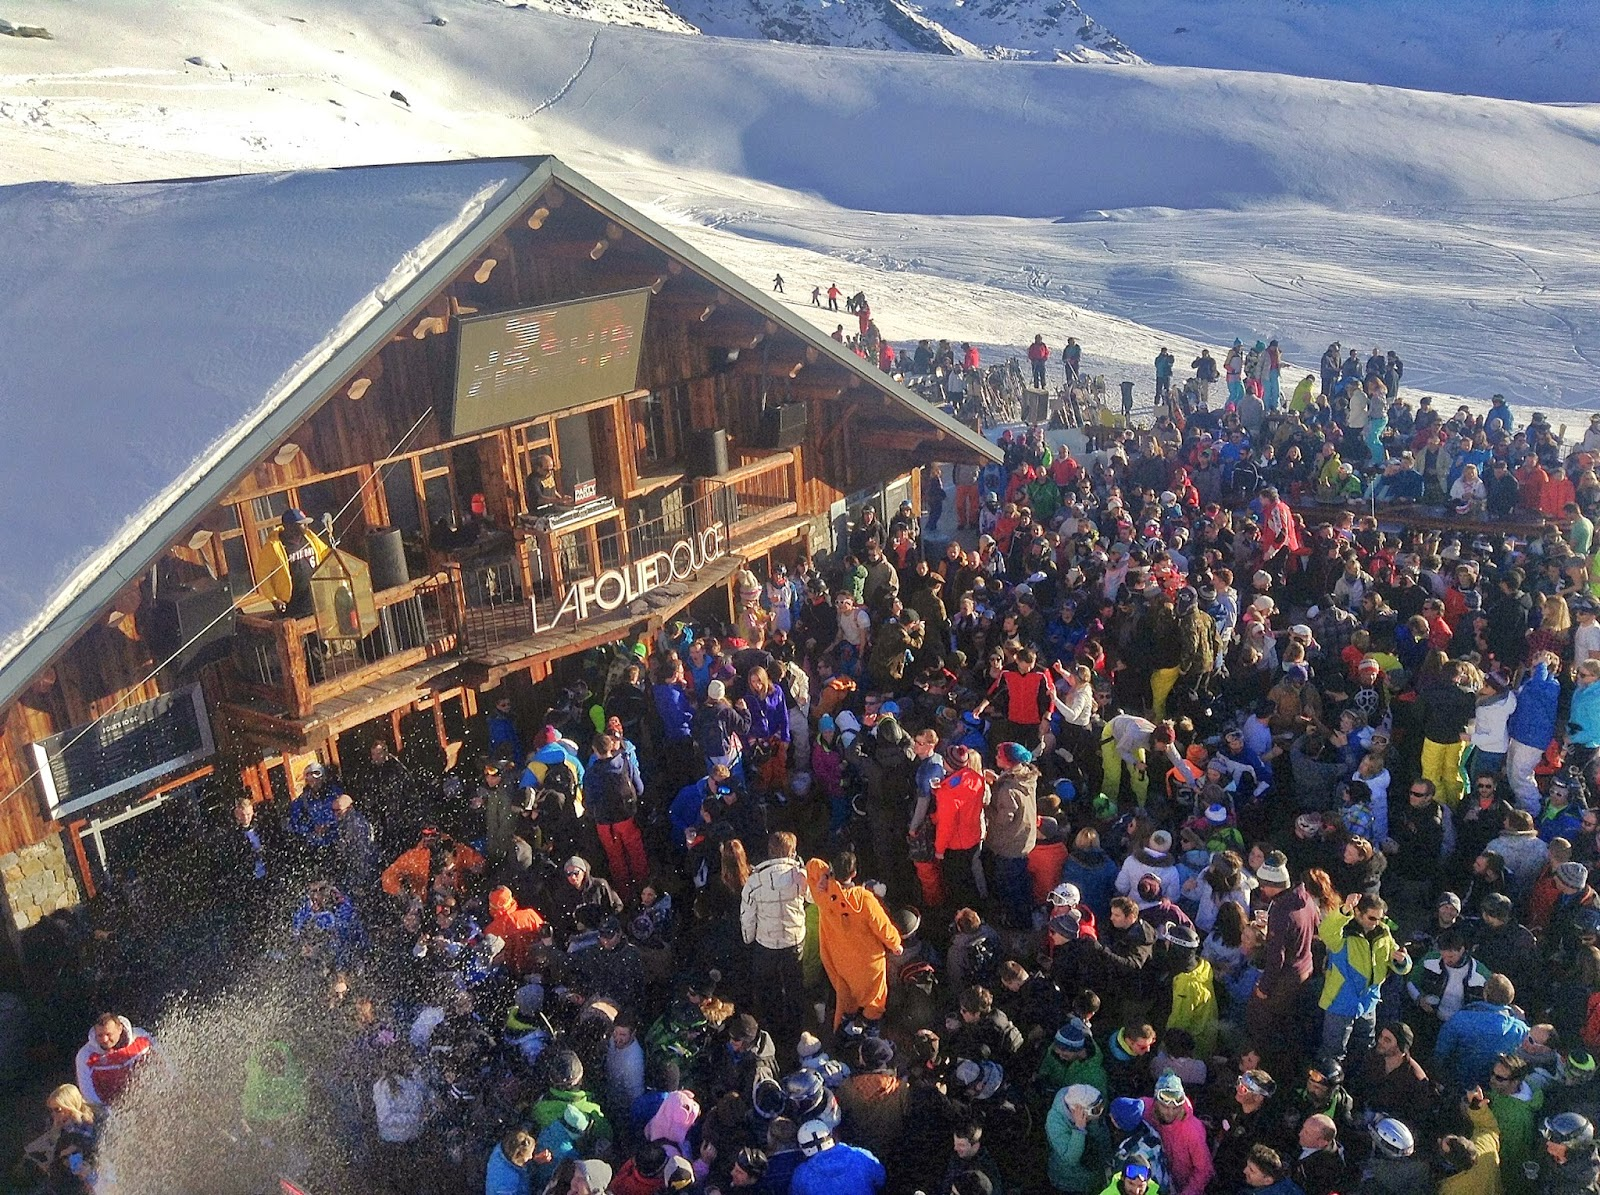 Valthorens party at la Folie Douce